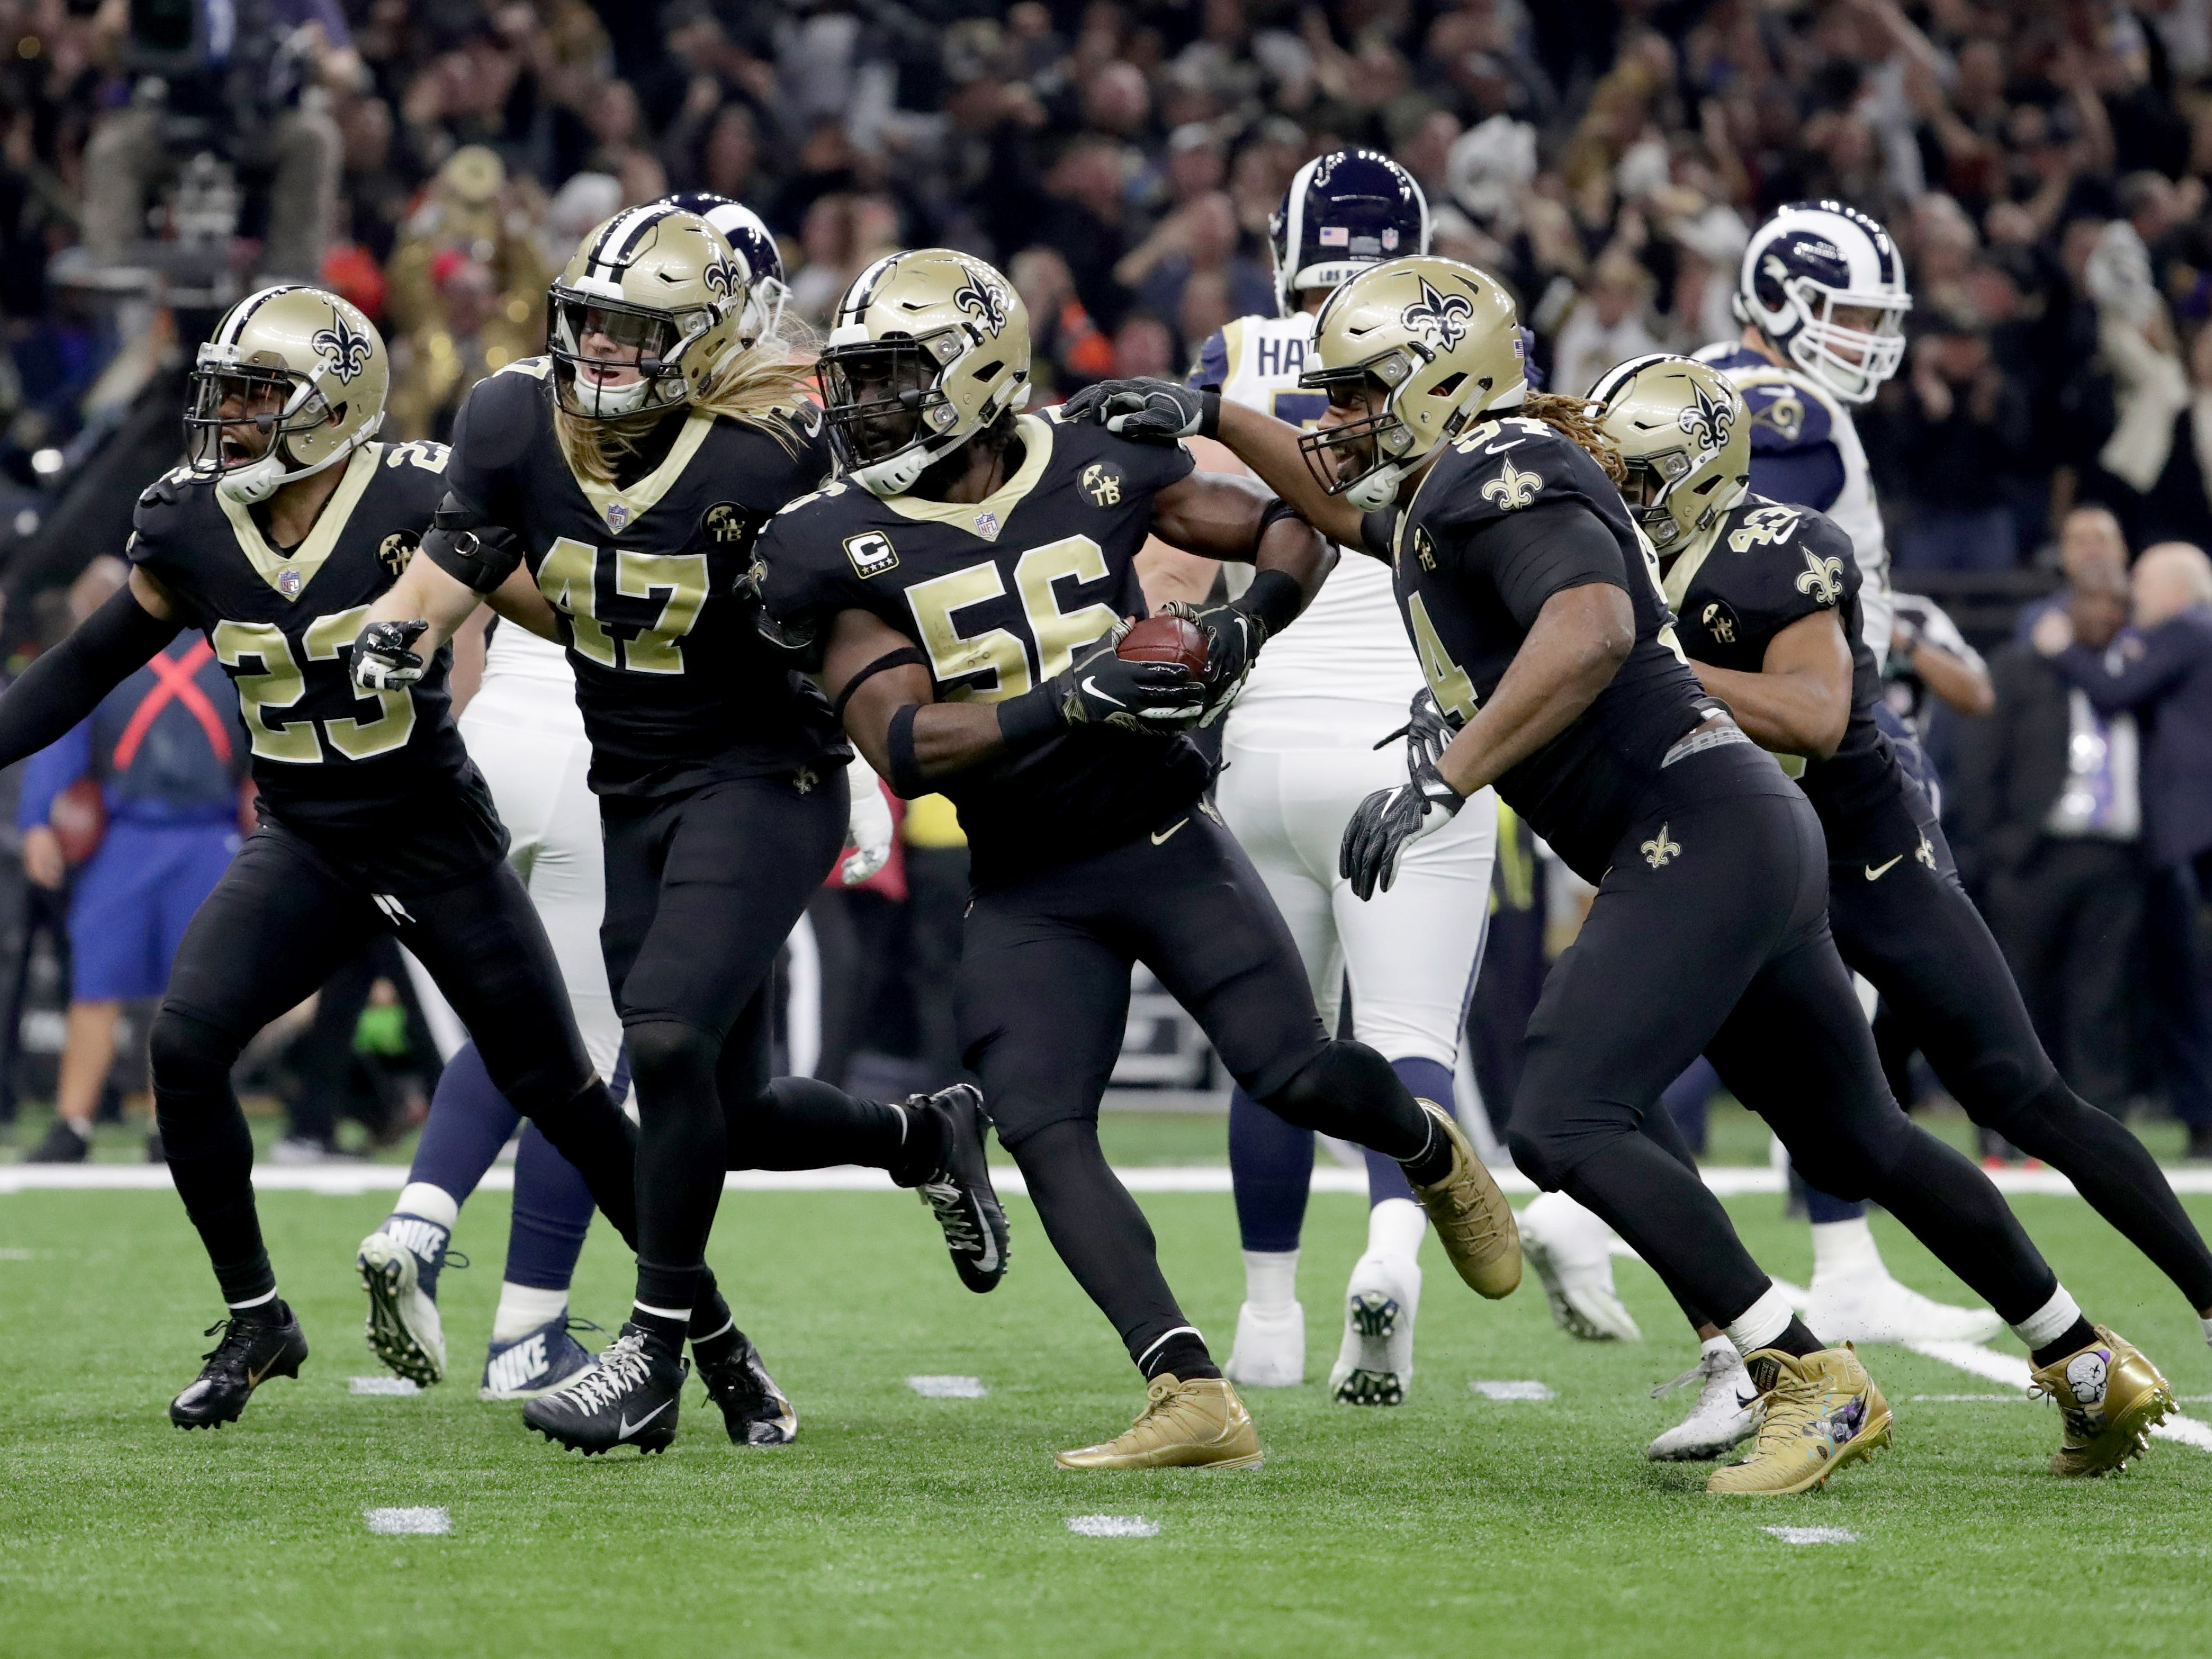 New Orleans Saints outside linebacker Demario Davis (56) celebrates with teammates after intercepting a pass against the Los Angeles Rams during the first quarter of the NFC Championship game at Mercedes-Benz Superdome.